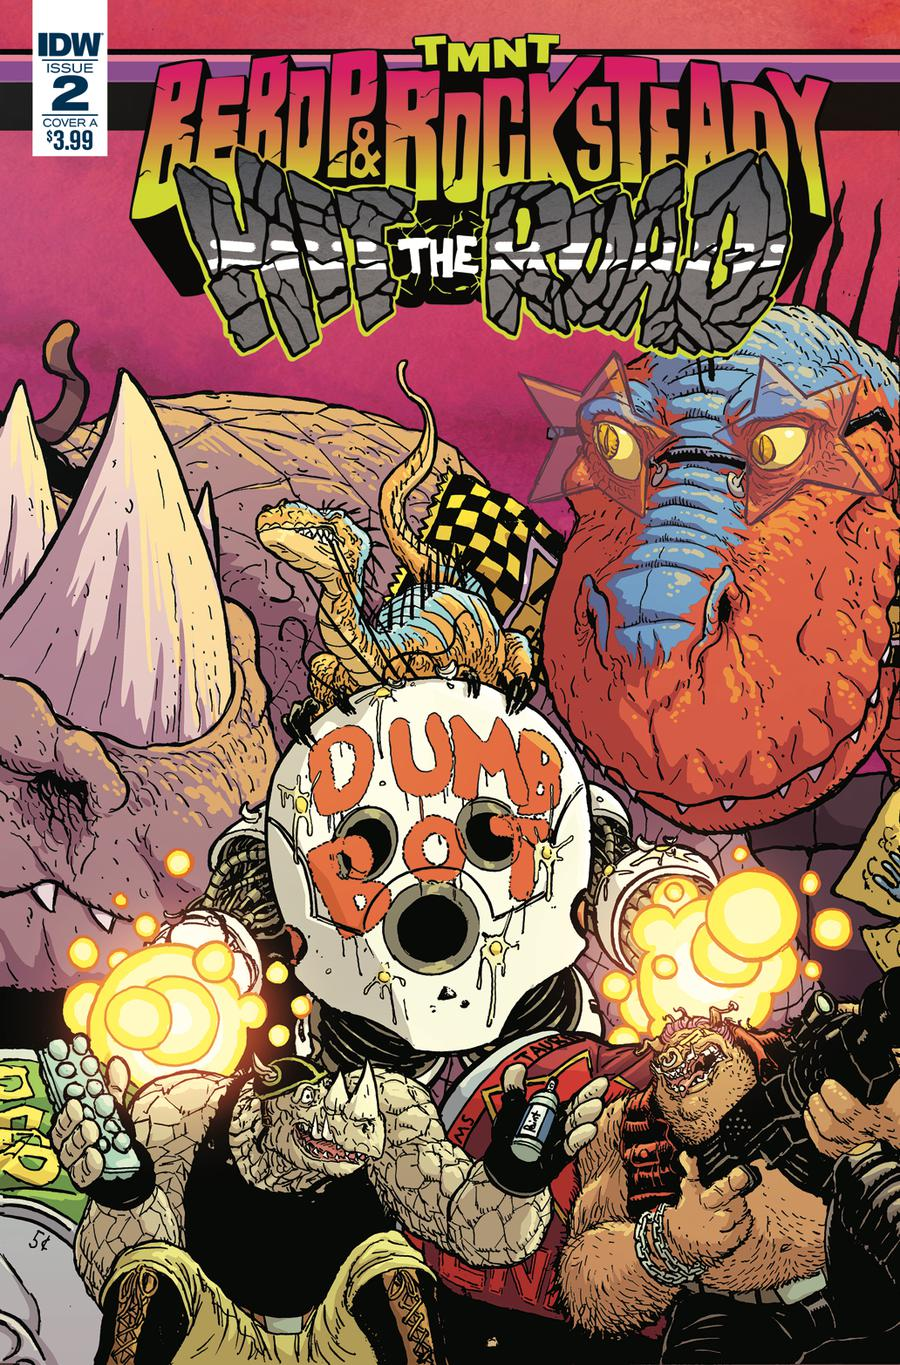 Teenage Mutant Ninja Turtles Bebop & Rocksteady Hit The Road #2 Cover A Regular Nick Pitarra Cover